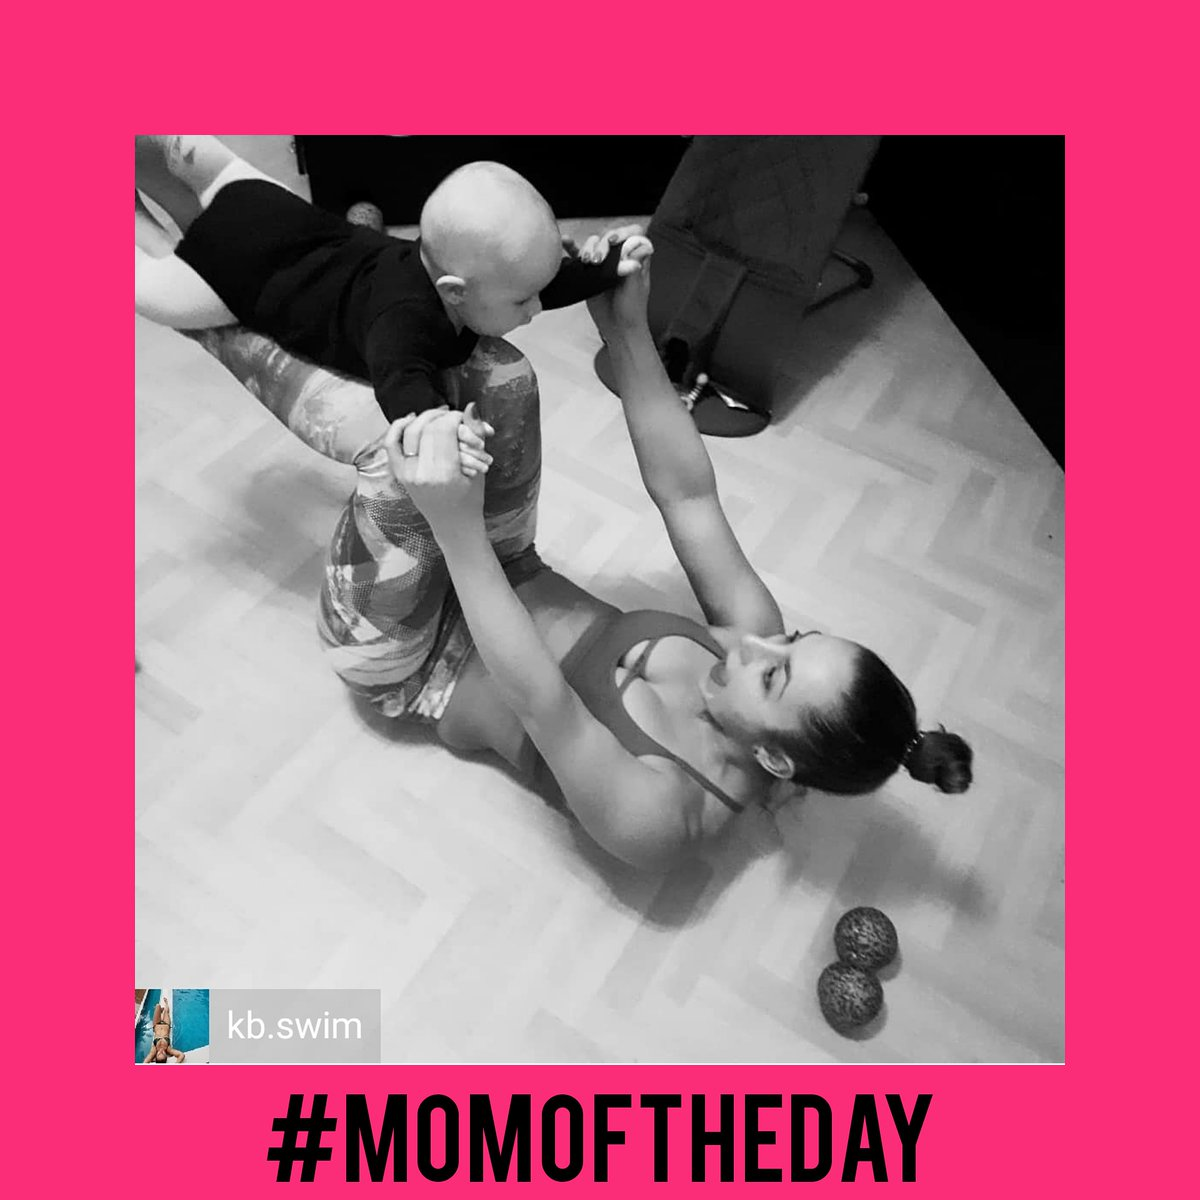 #momoftheday Keep being confident, strong and beautiful! Show this mom some love  Tell us about your passion for swimming. #mtsm #confident #strong #beautiful #mom #love #thanks #feature  Reposted from @kb.swim Family Workout and Blackroll Session #familytime #stretchingpic.twitter.com/JVYUWan06w